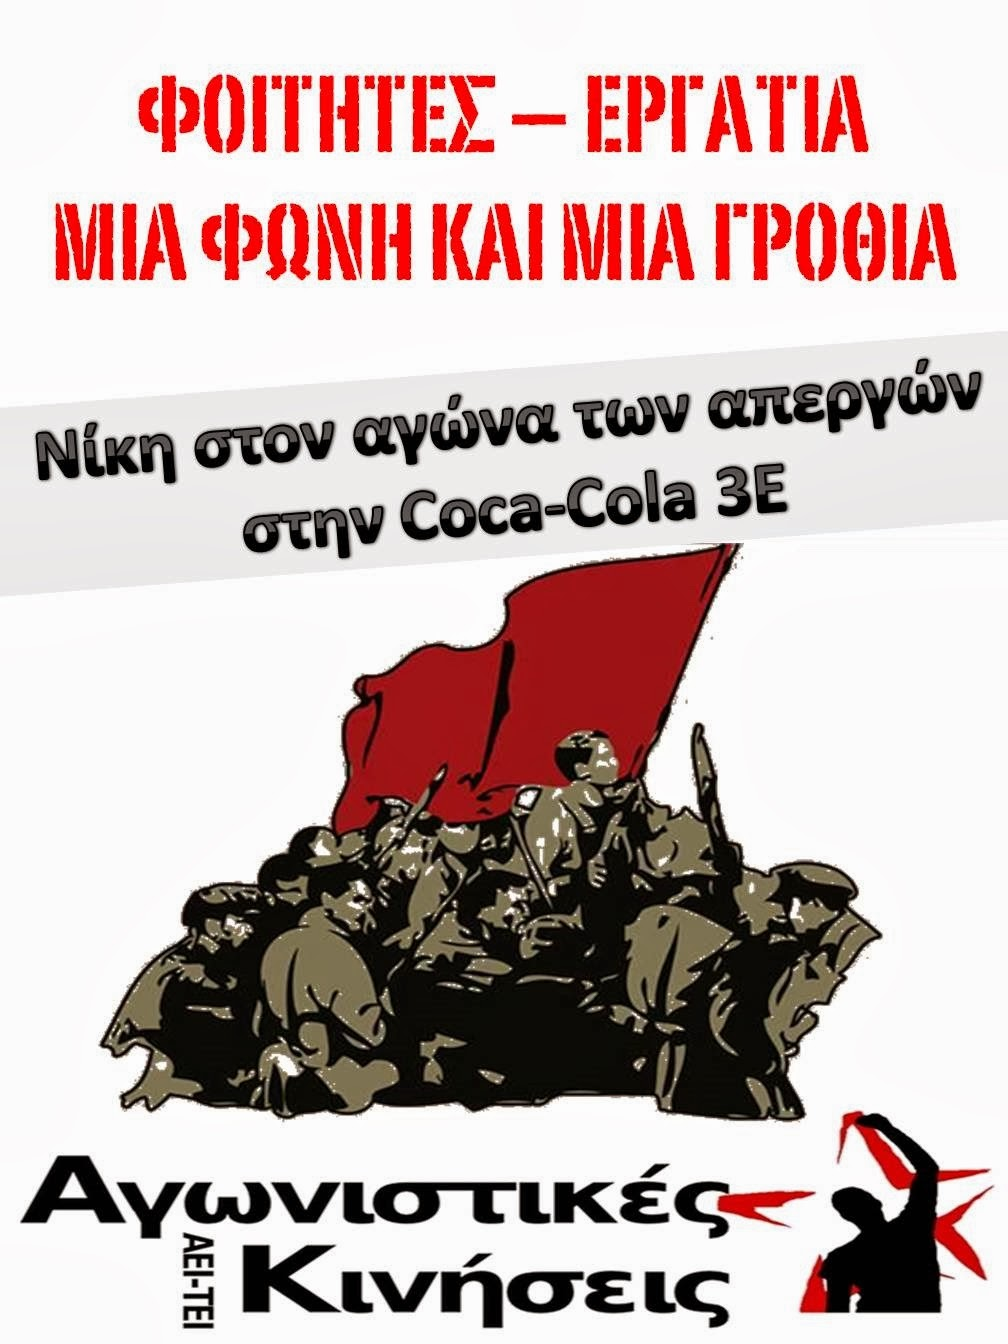 Νίκη στον αγώνα των απεργών στην Coca-Cola 3Ε!